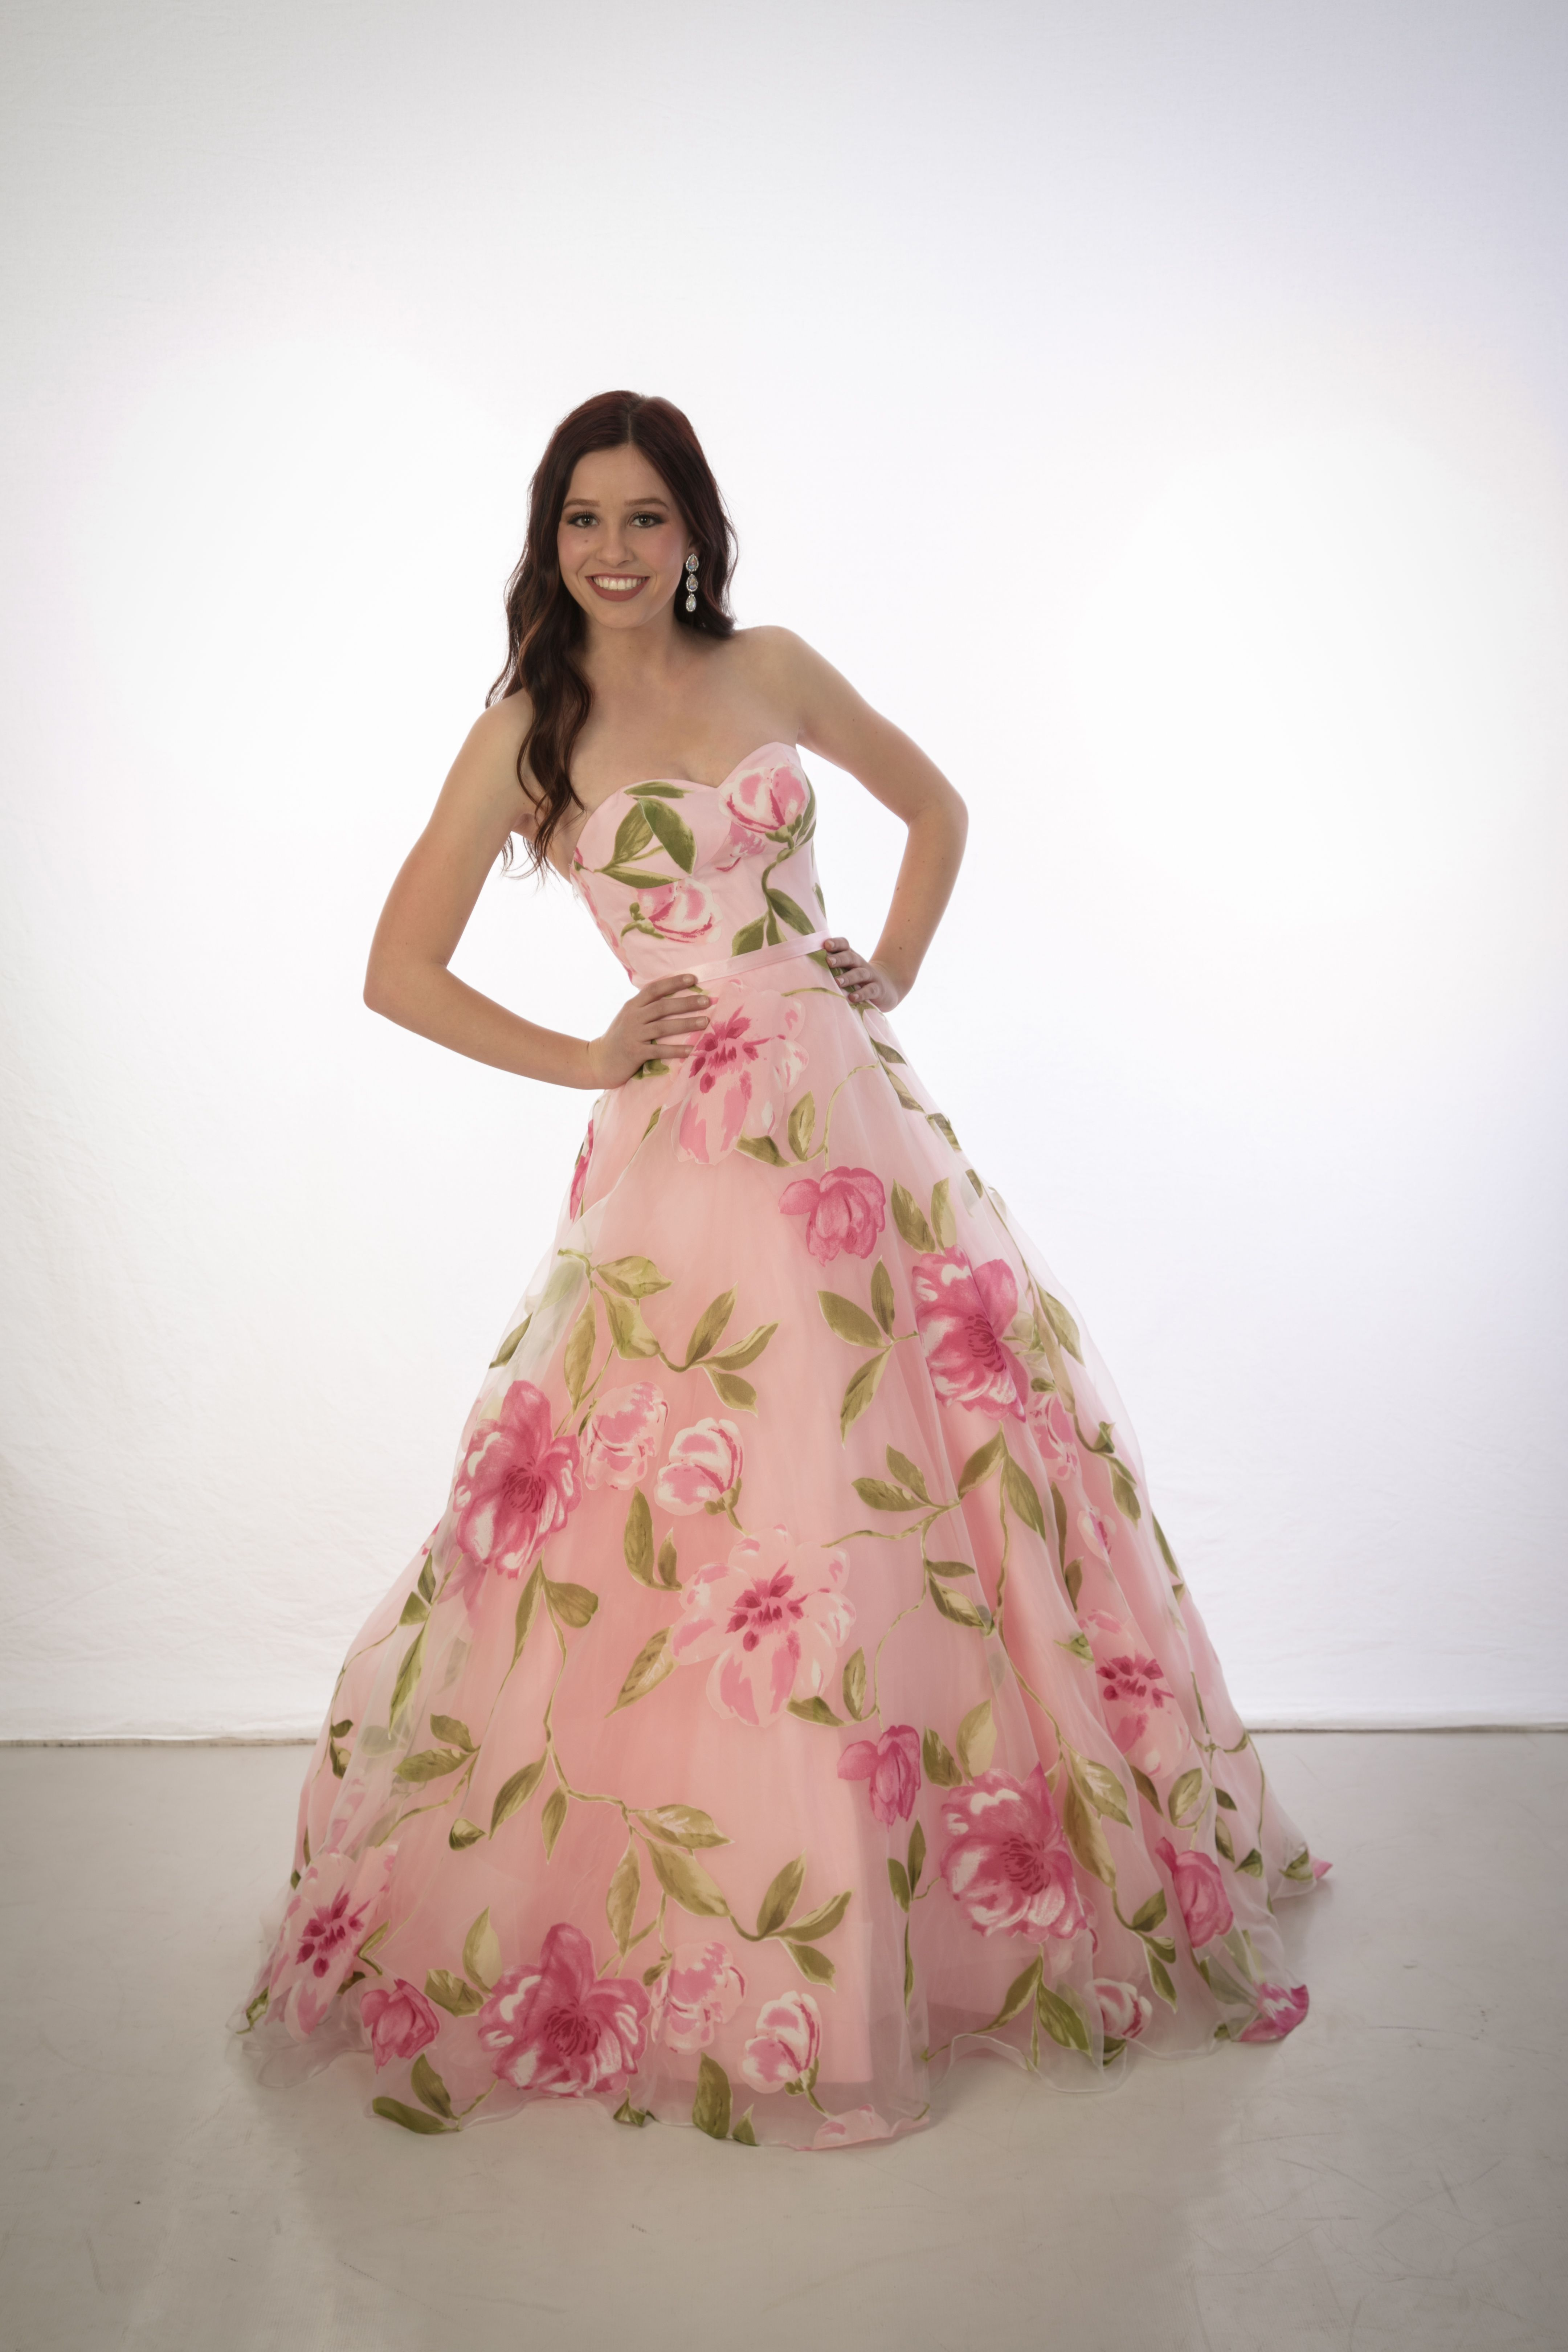 Floral print ball gown prom dress dresses pinterest ball gown